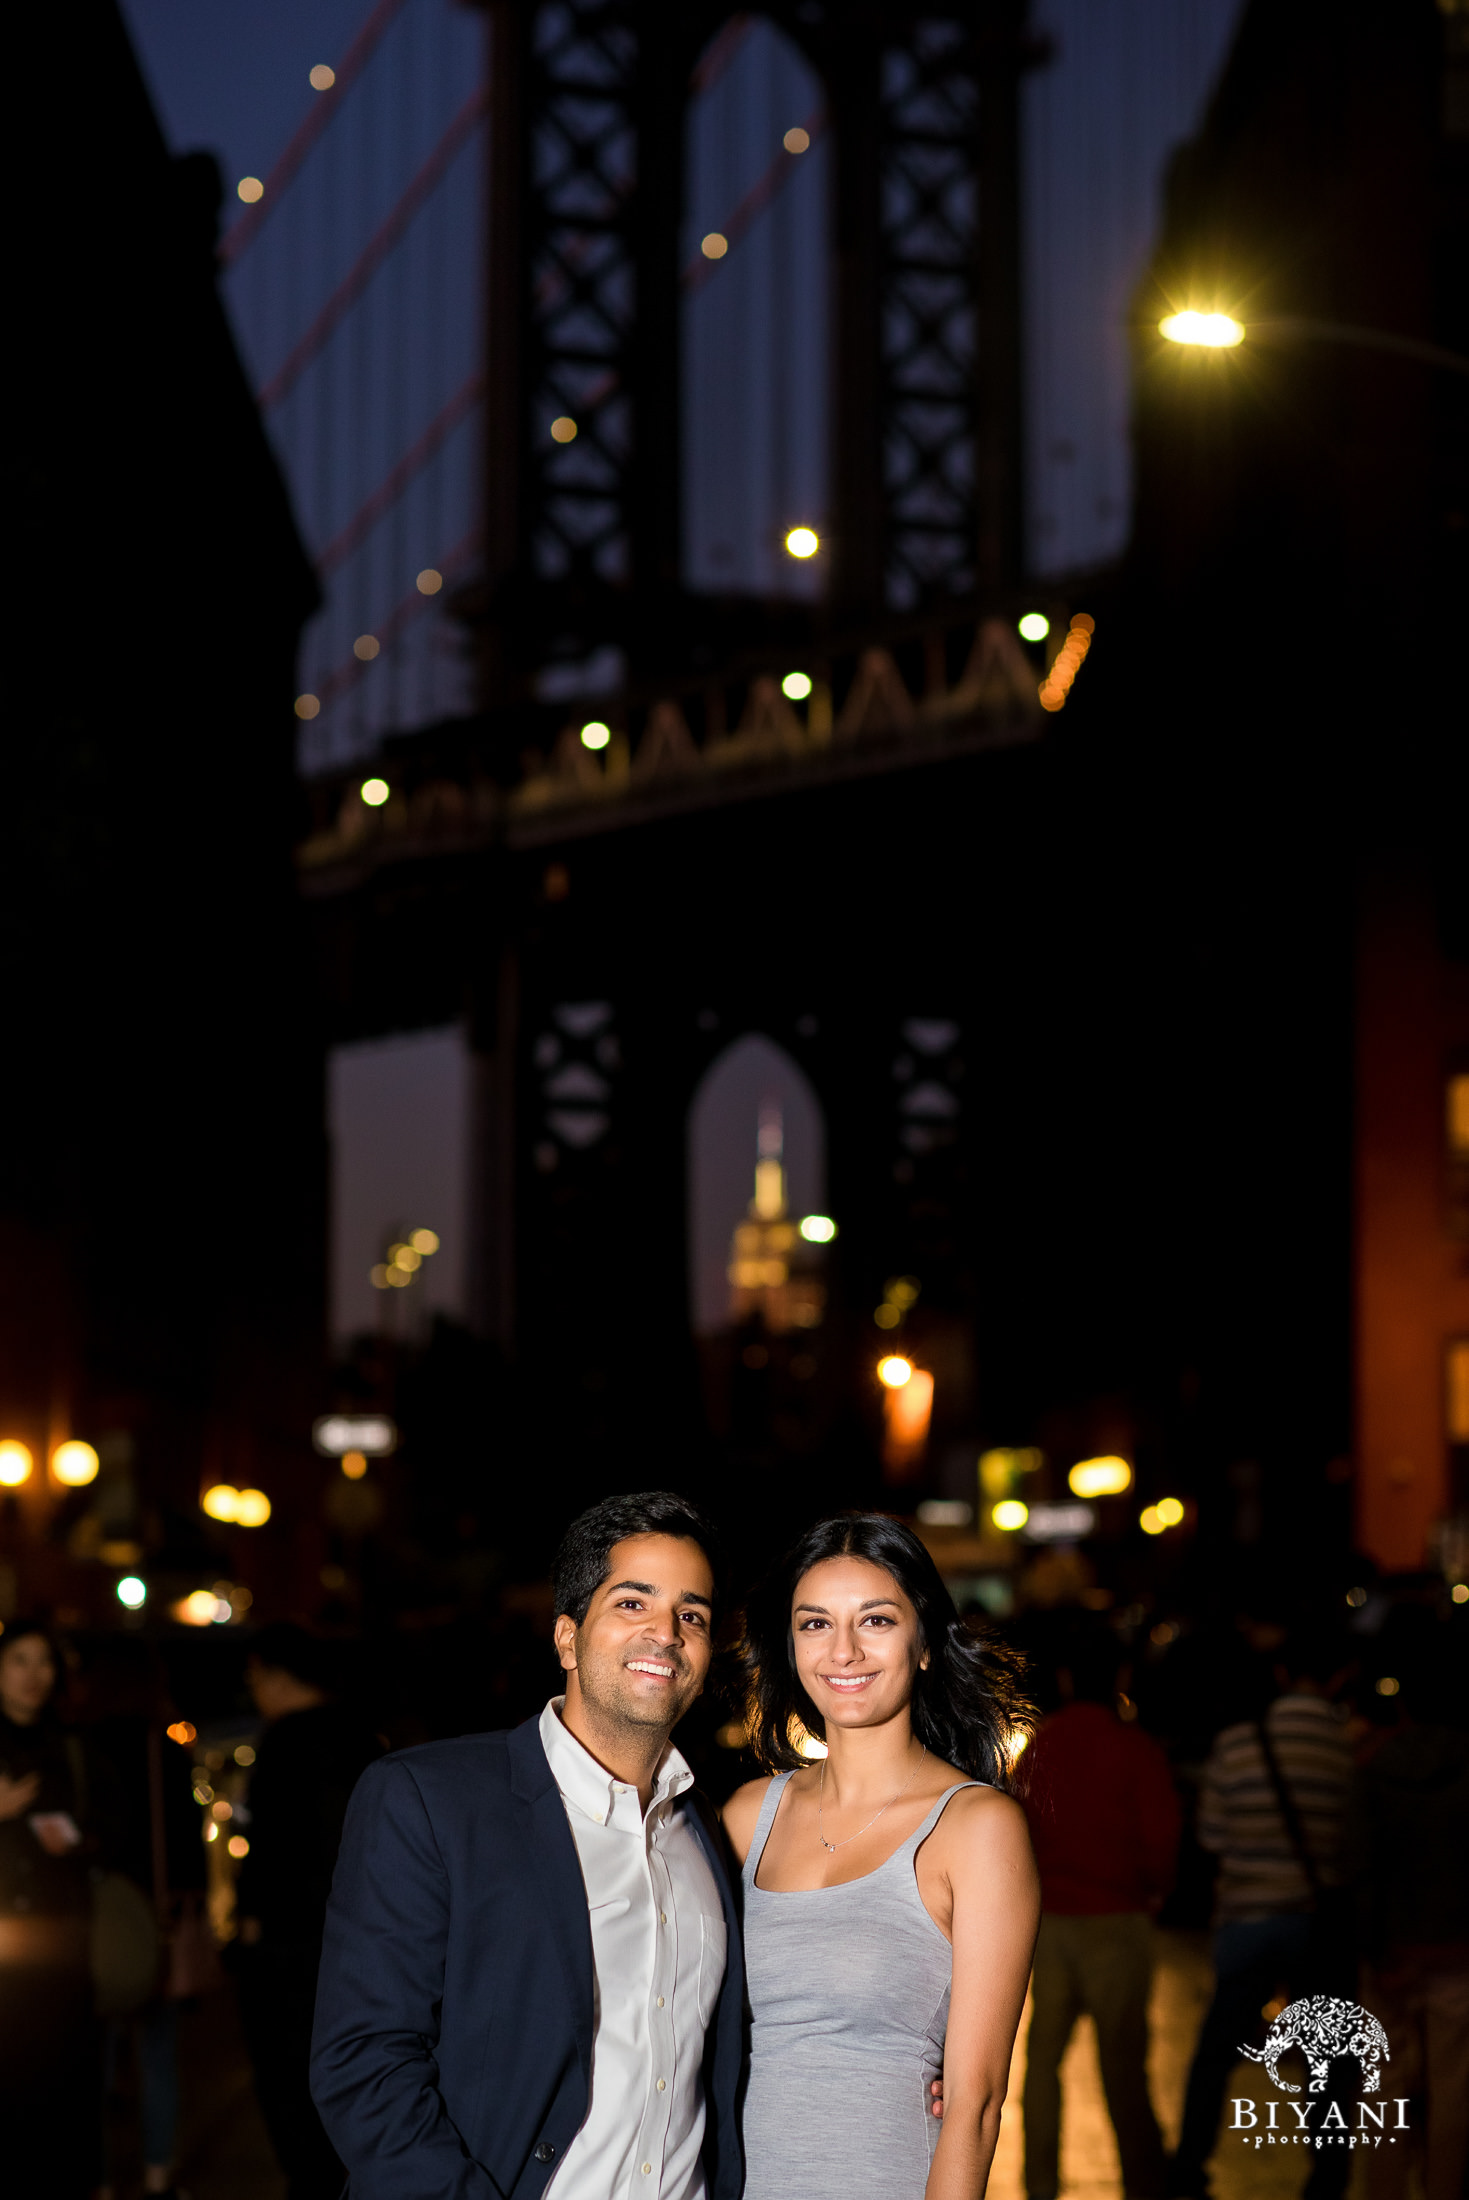 couple in front of Manhattan Bridge at night with city lights shining bright